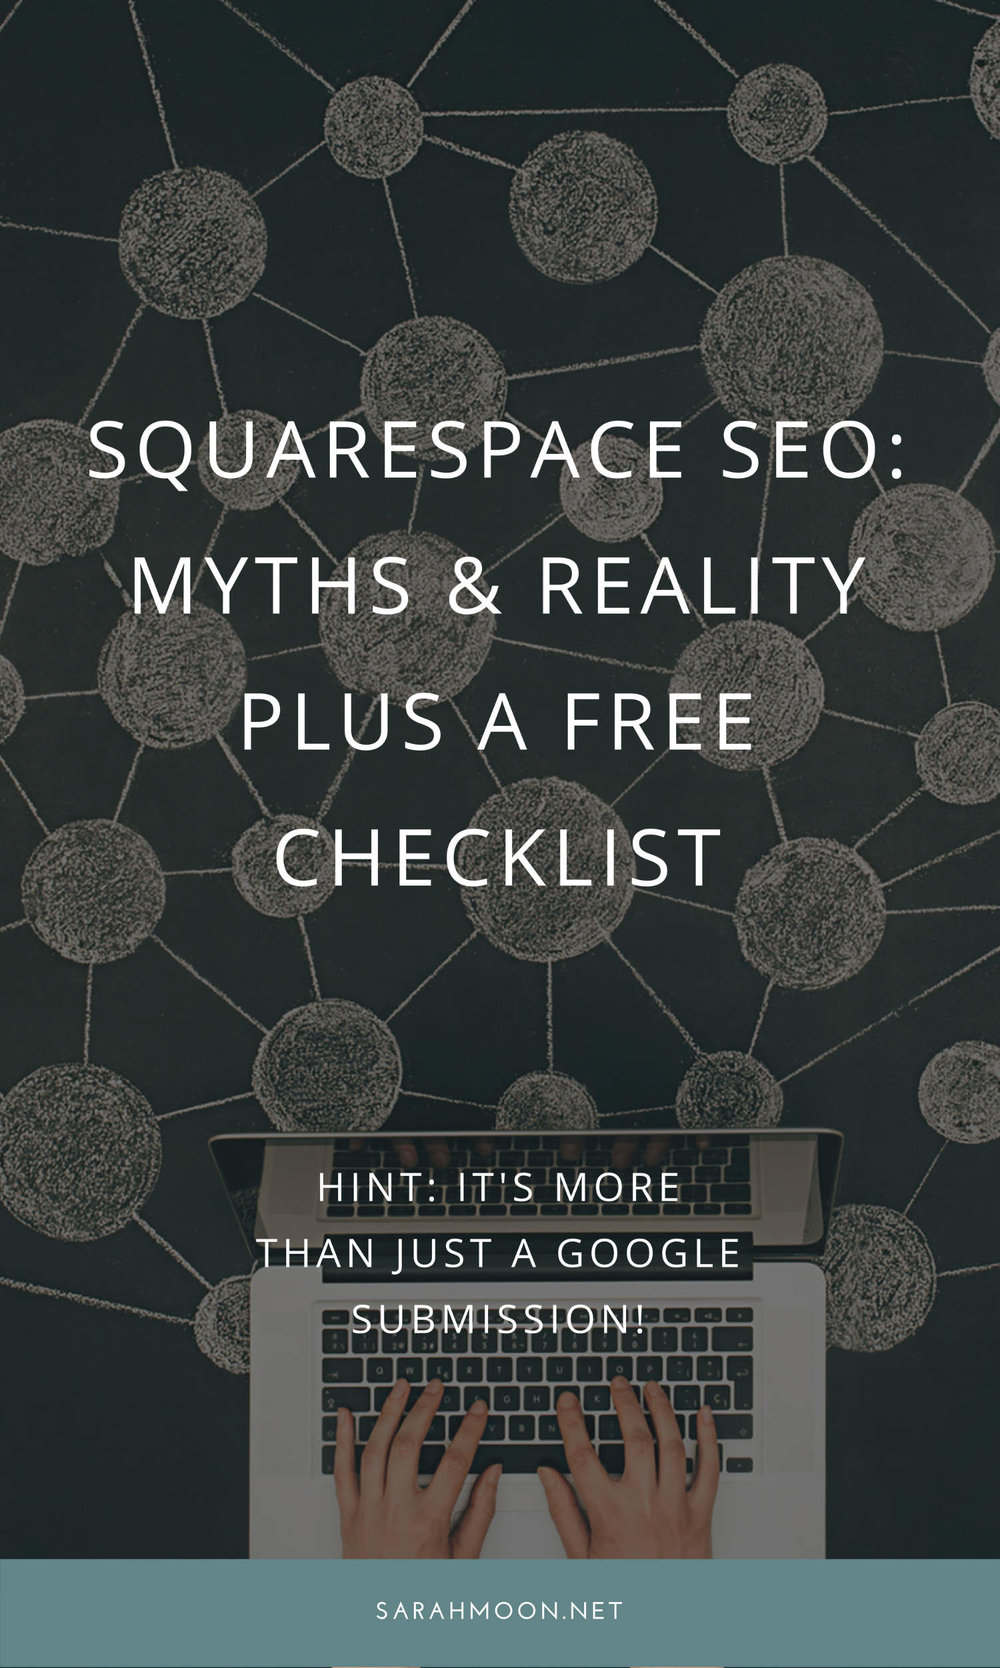 Squarespace SEO Checklist - Go Beyond Google (from Sarah Moon + Co)